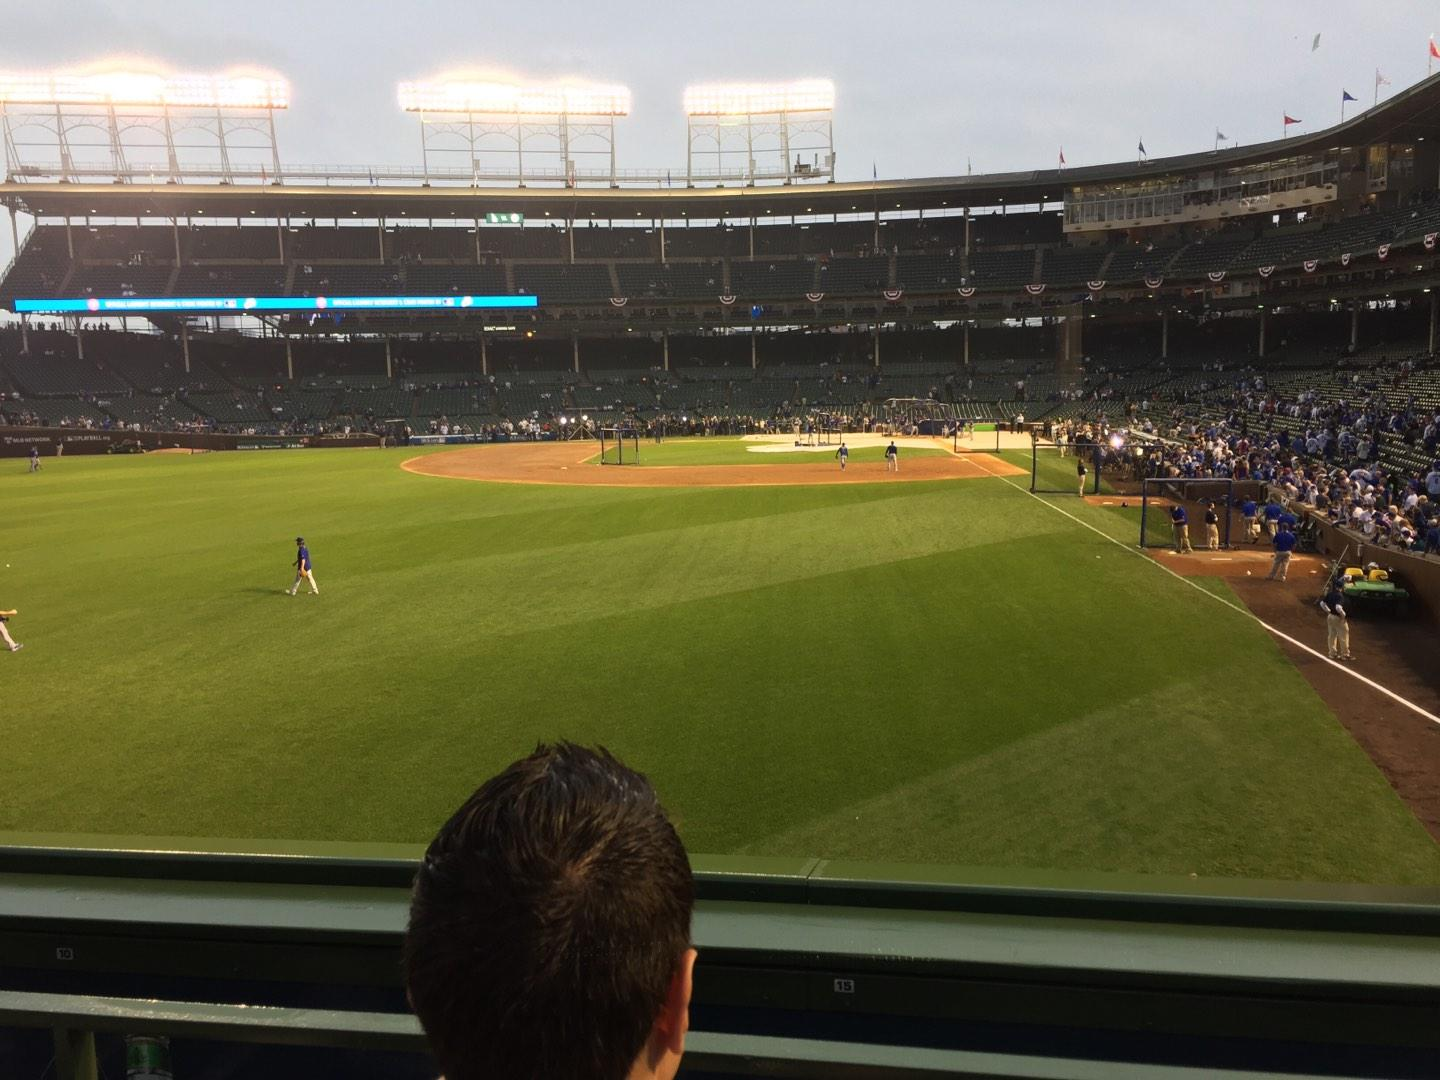 Wrigley Field Section 502 Row 9 Seat 7